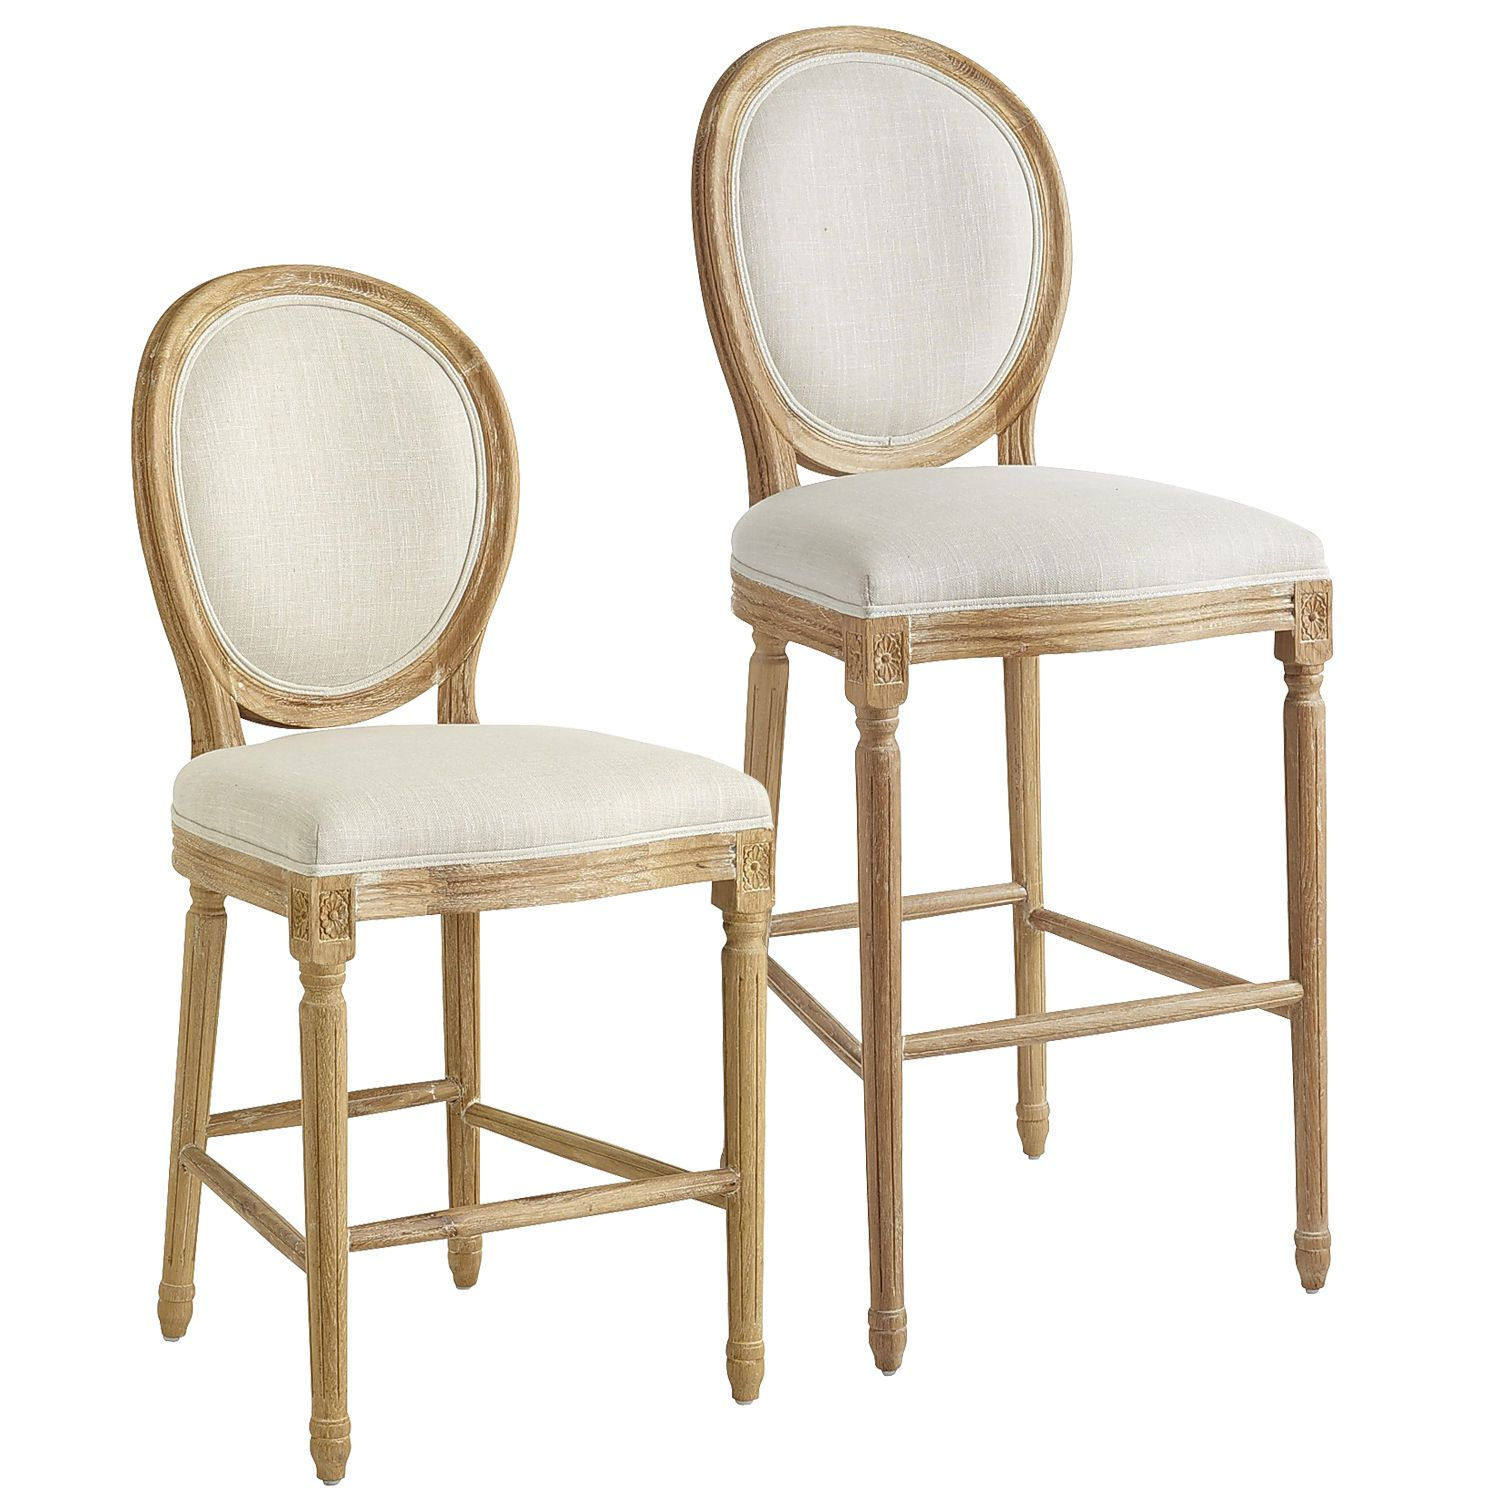 Eliane Bar Amp Counterstools Flax From Pier 1 Would These